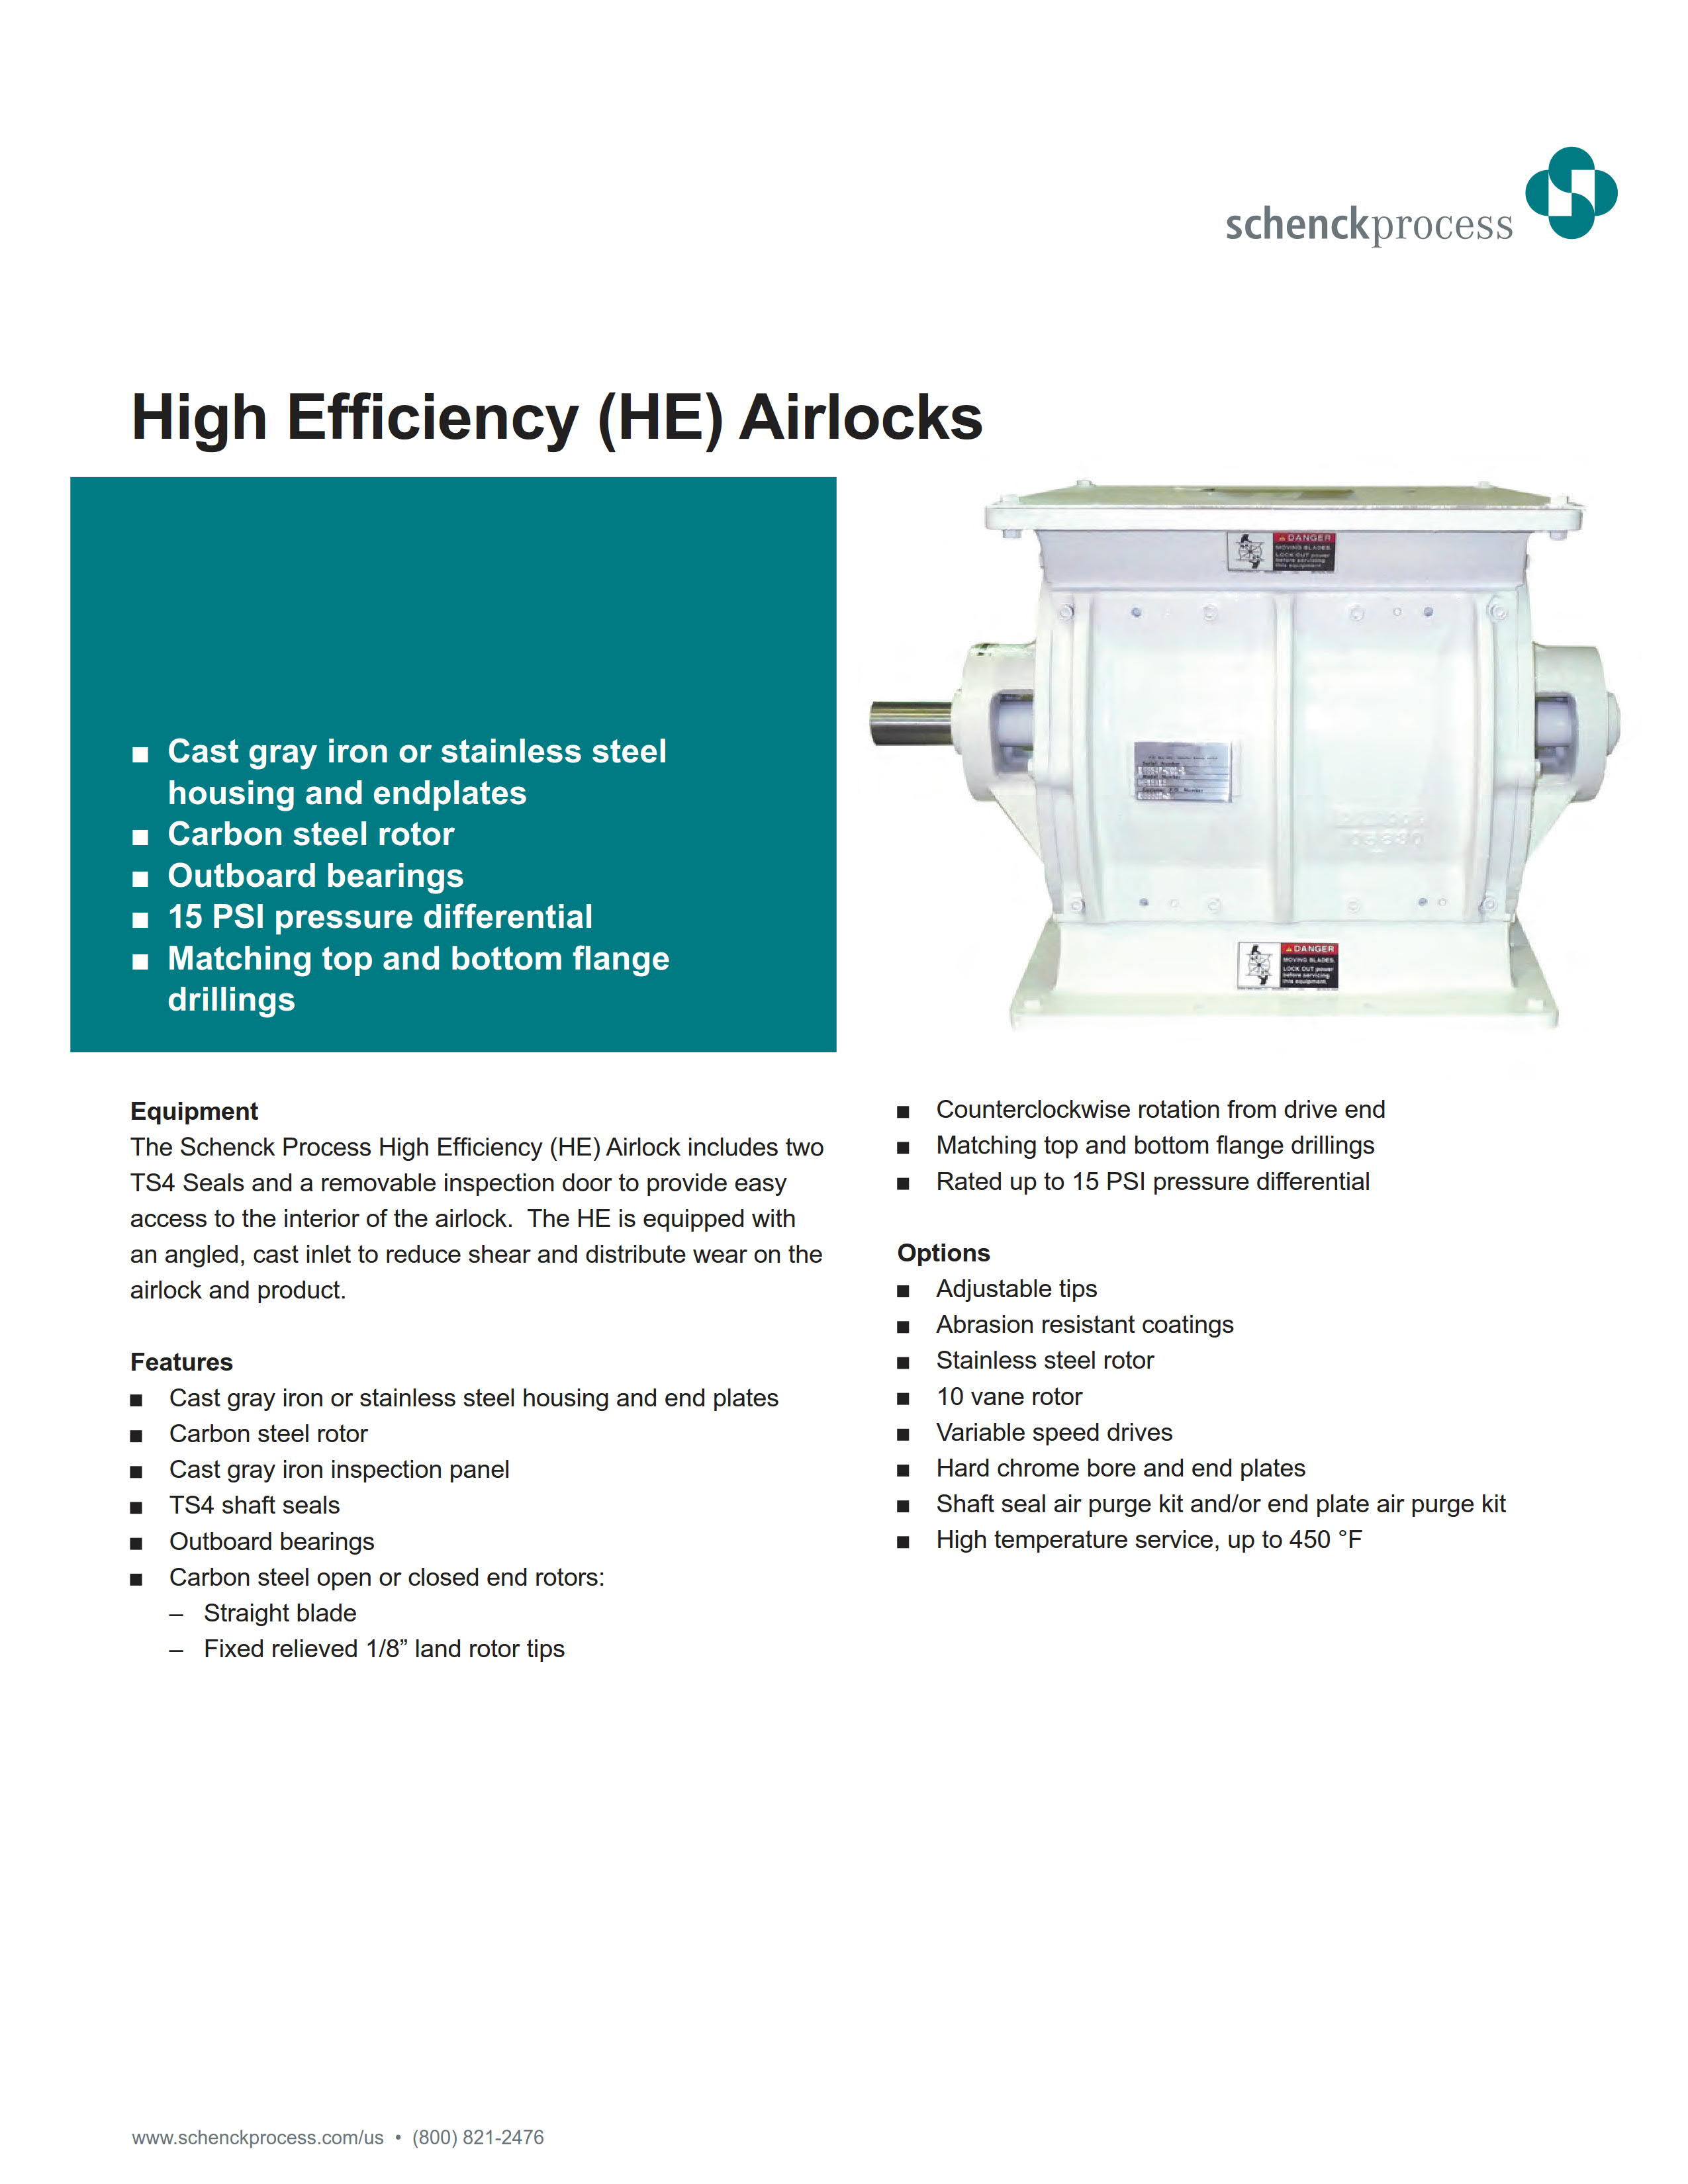 High Efficiency (HE) Airlock